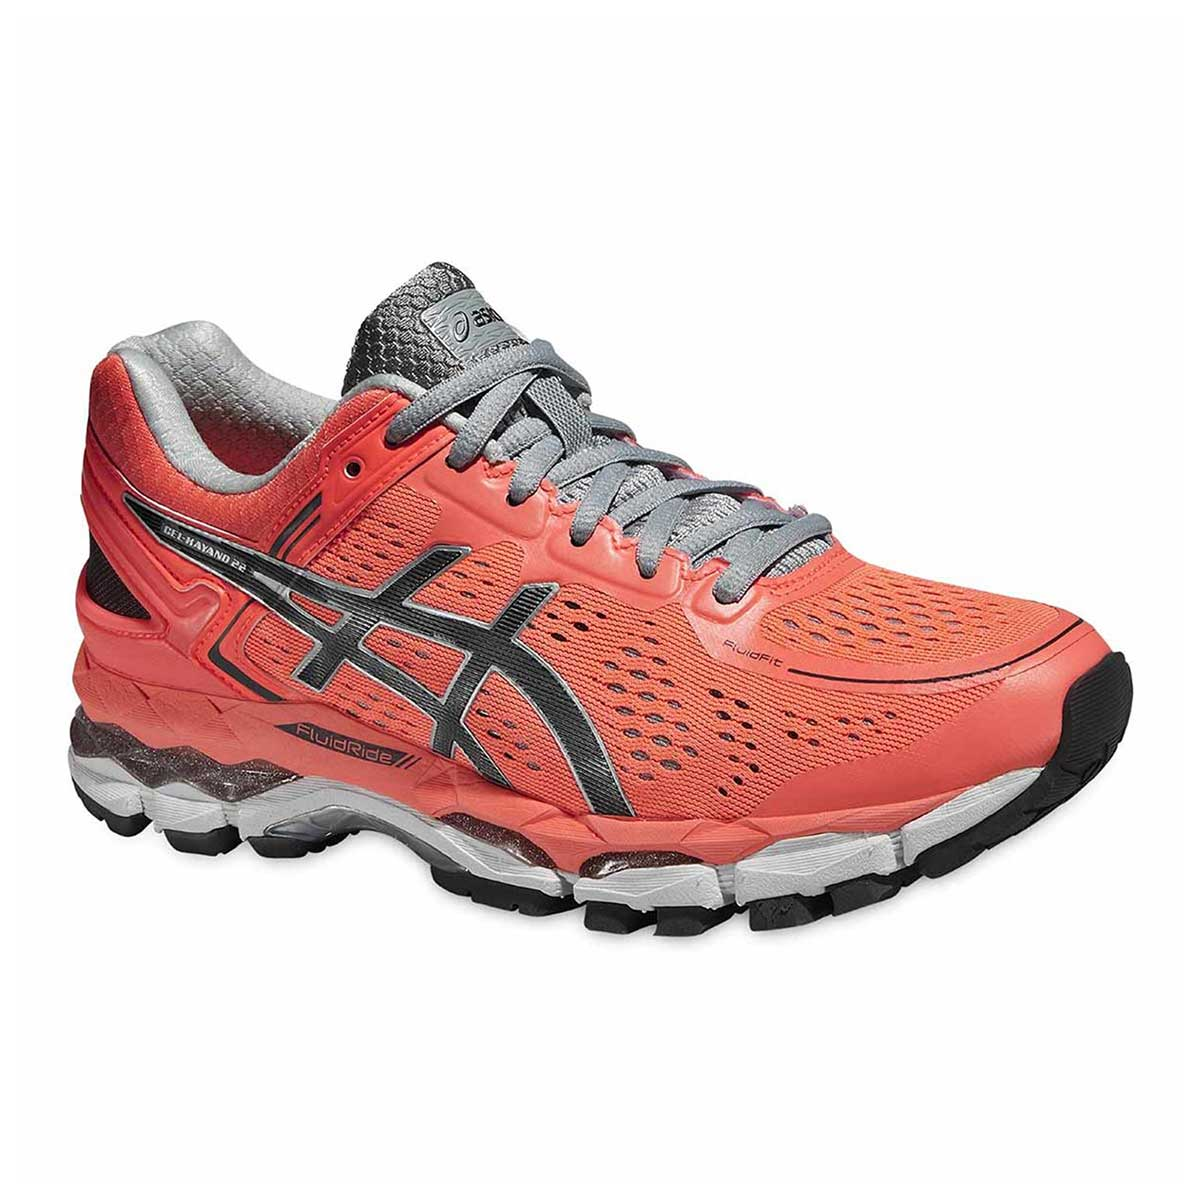 size 40 07bce a07b1 Asics Gel-Kayano 22 Women's Running Shoes (Flash Coral/Carbon/Silver Grey)